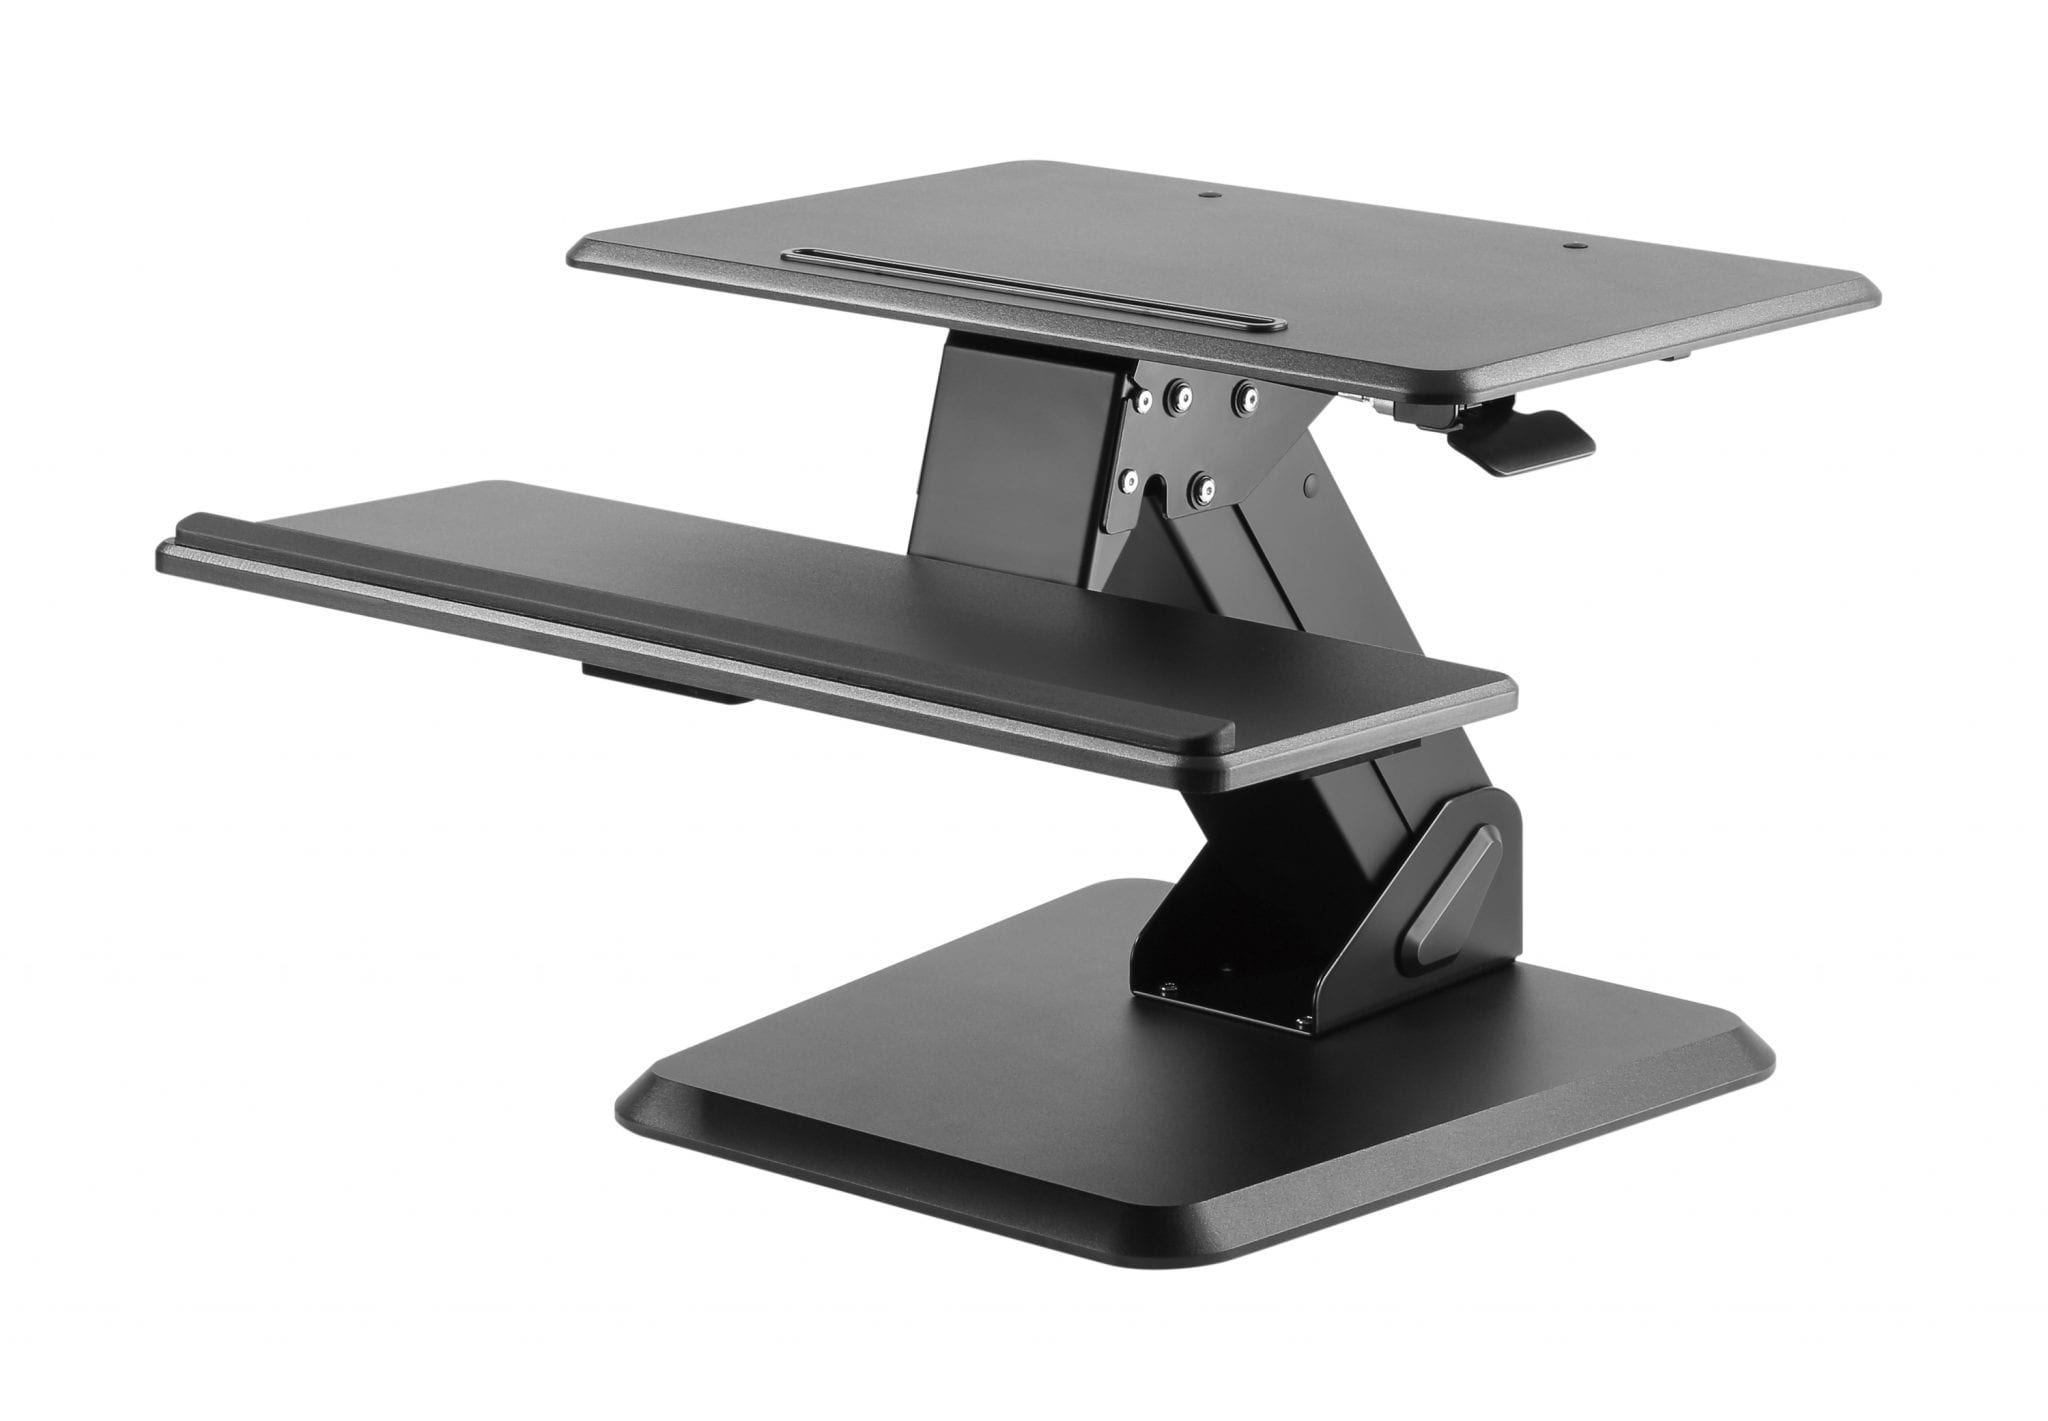 Acava Gss03 Series Sit Stand Workstation For Lower Back Pain